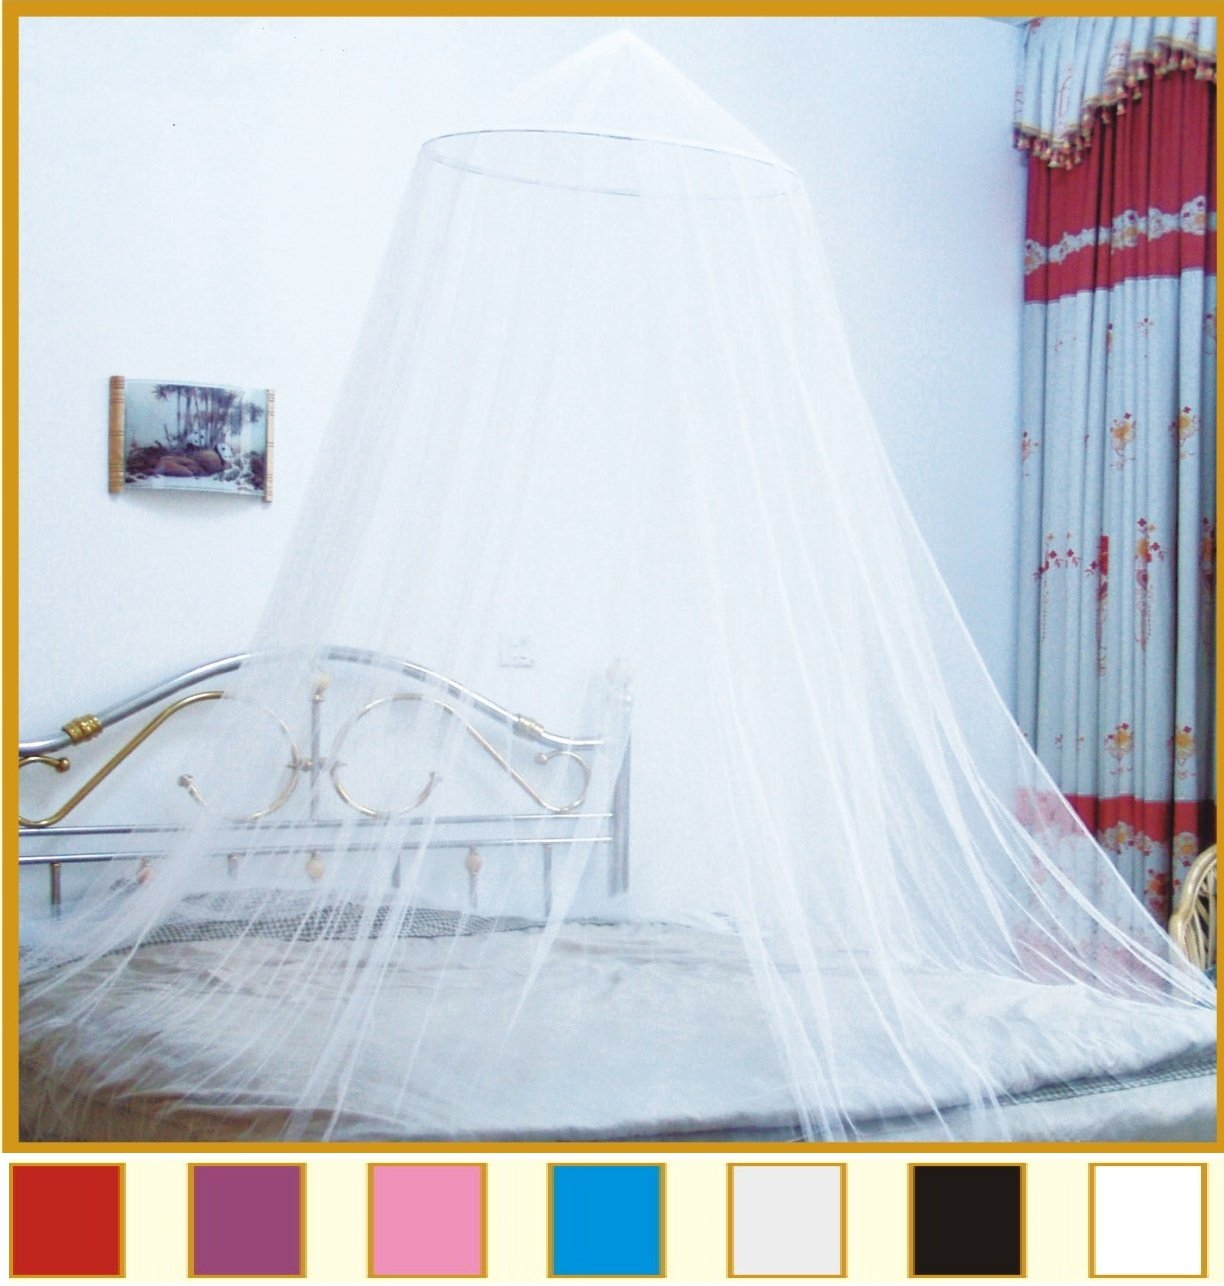 Amazon.com Octorose Round Hoop Bed Canopy Netting Mosquito Net Fit Crib Twin Full Queen King (Buttercream) Home u0026 Kitchen & Amazon.com: Octorose Round Hoop Bed Canopy Netting Mosquito Net ...